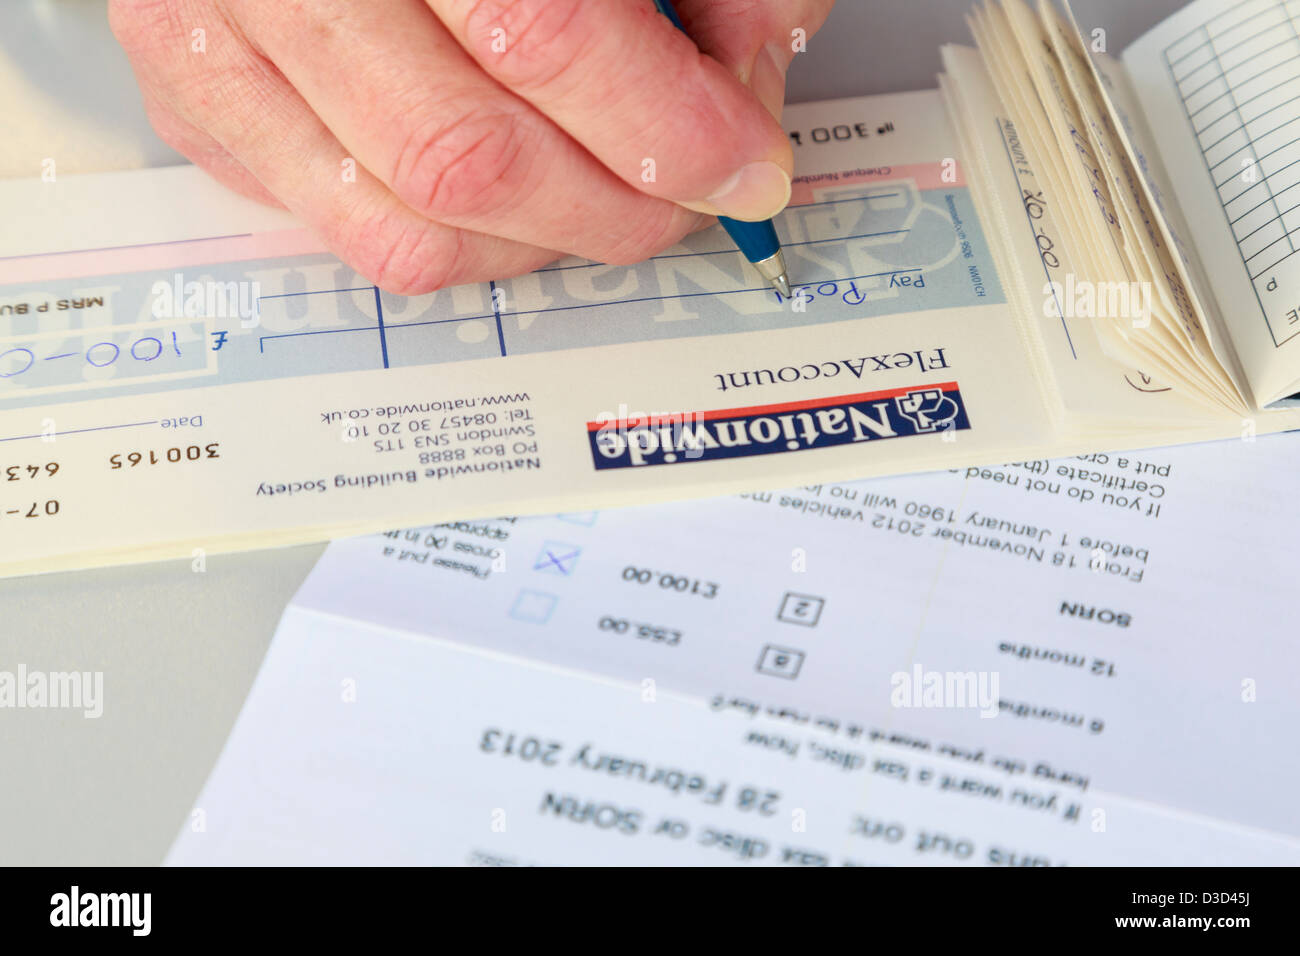 Female person writing a Nationwide cheque to pay for 12 months car tax renewal at the Post Office. England UK Britain - Stock Image